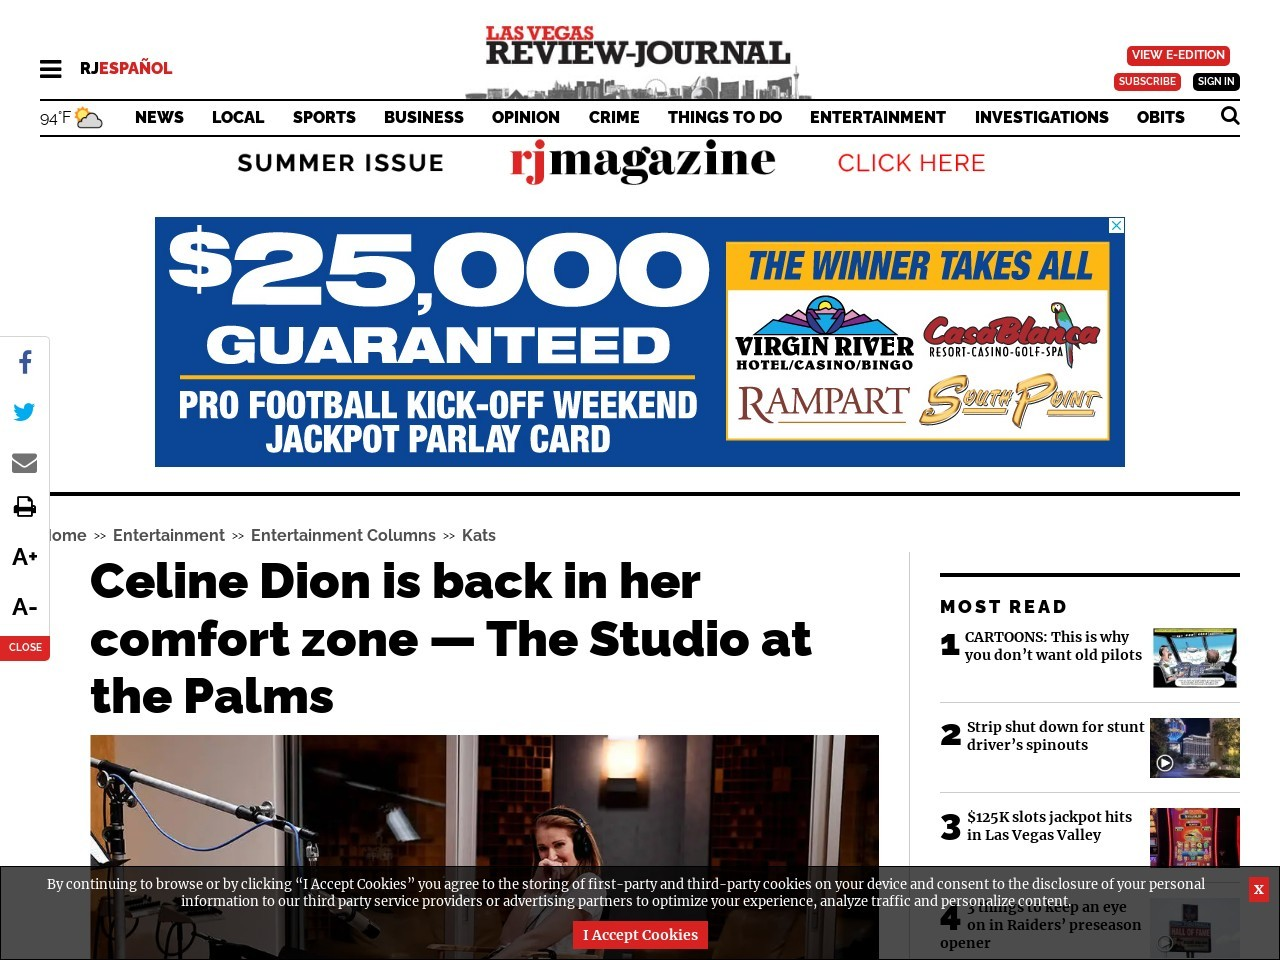 Celine Dion is back in her comfort zone — The Studio at the Palms